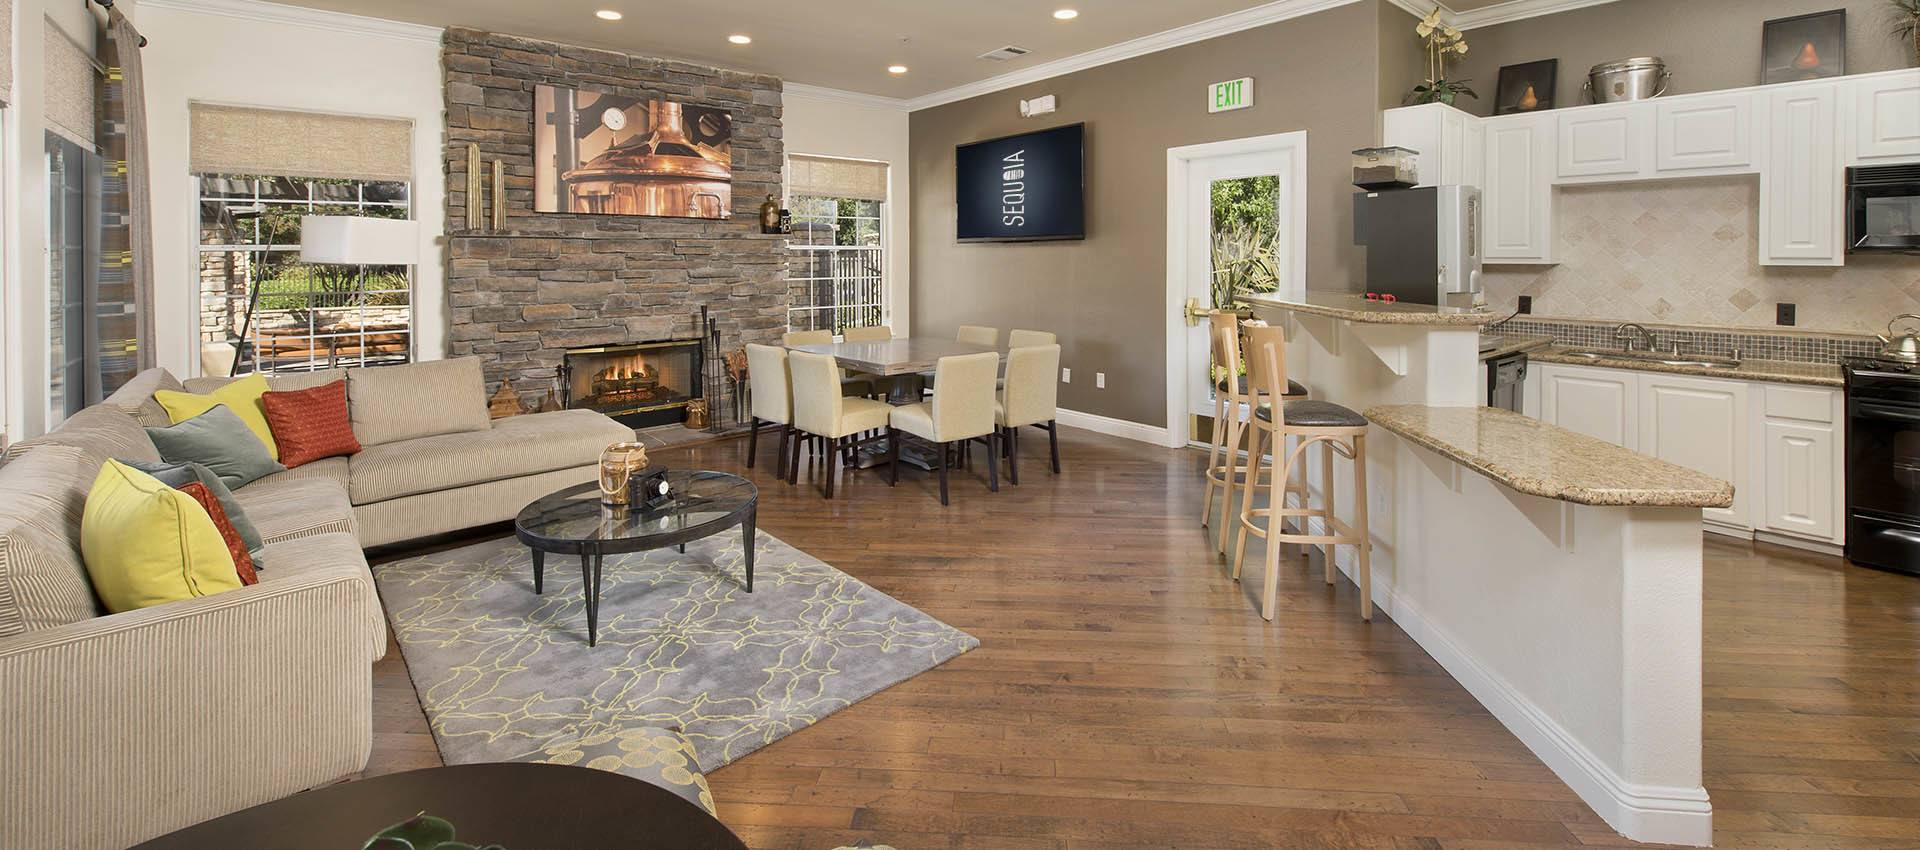 Resident's Clubhouse with Gathering Kitchen at River Oaks Apartment Homes in Vacaville